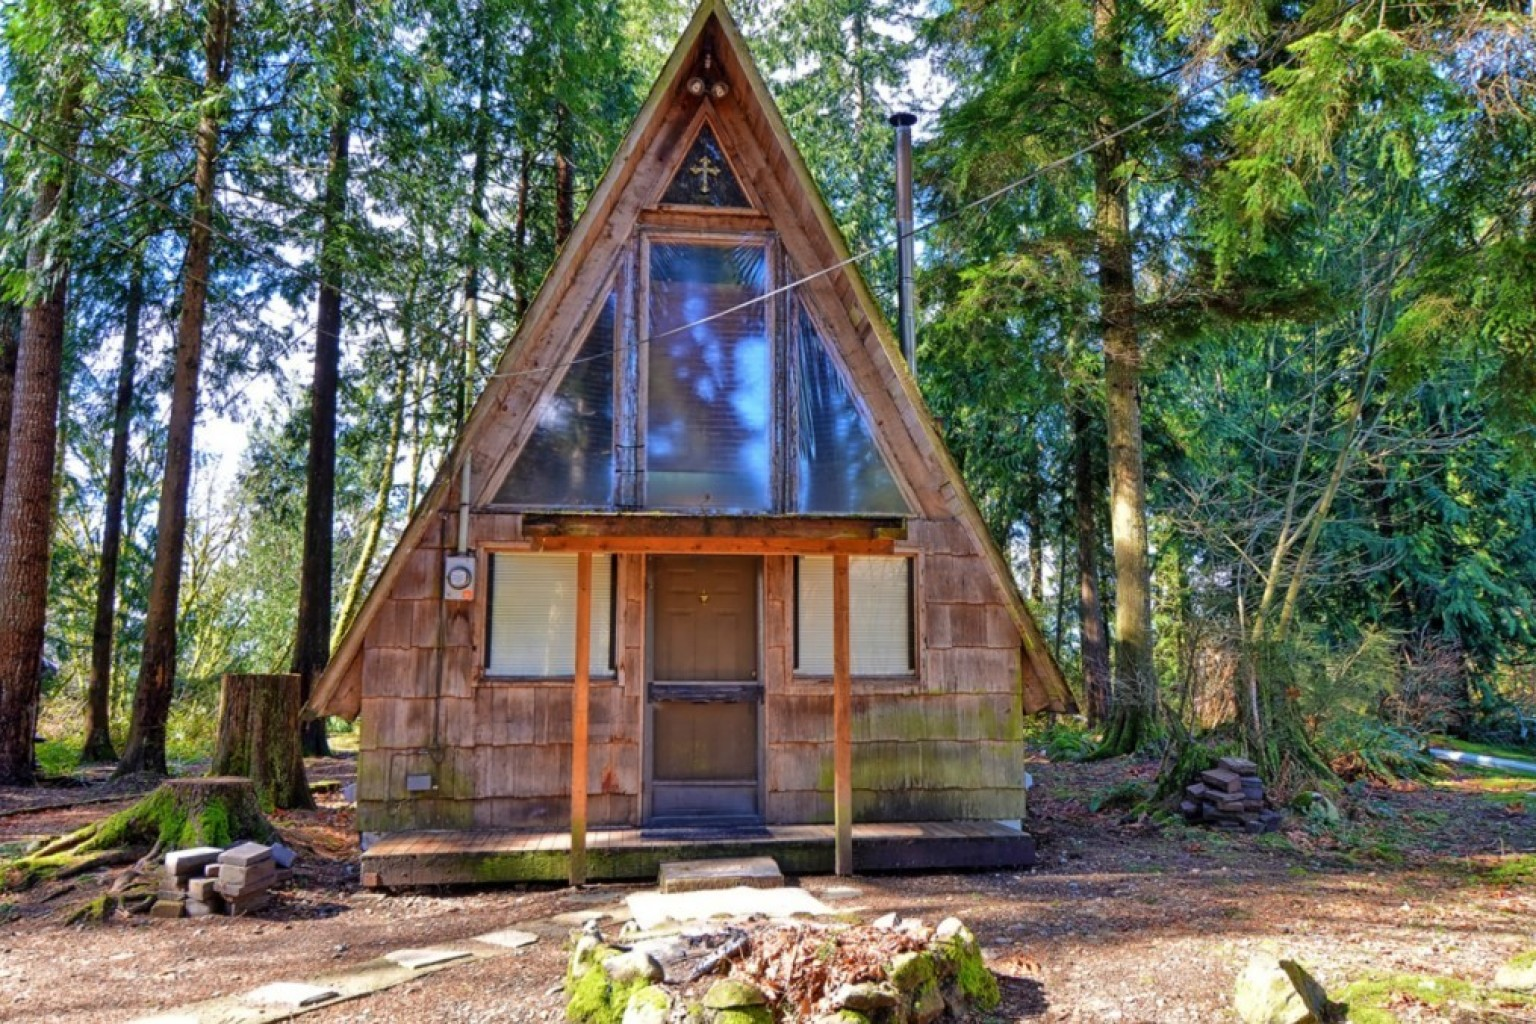 This A Frame Tiny Home For Sale Would Make The Perfect Summer